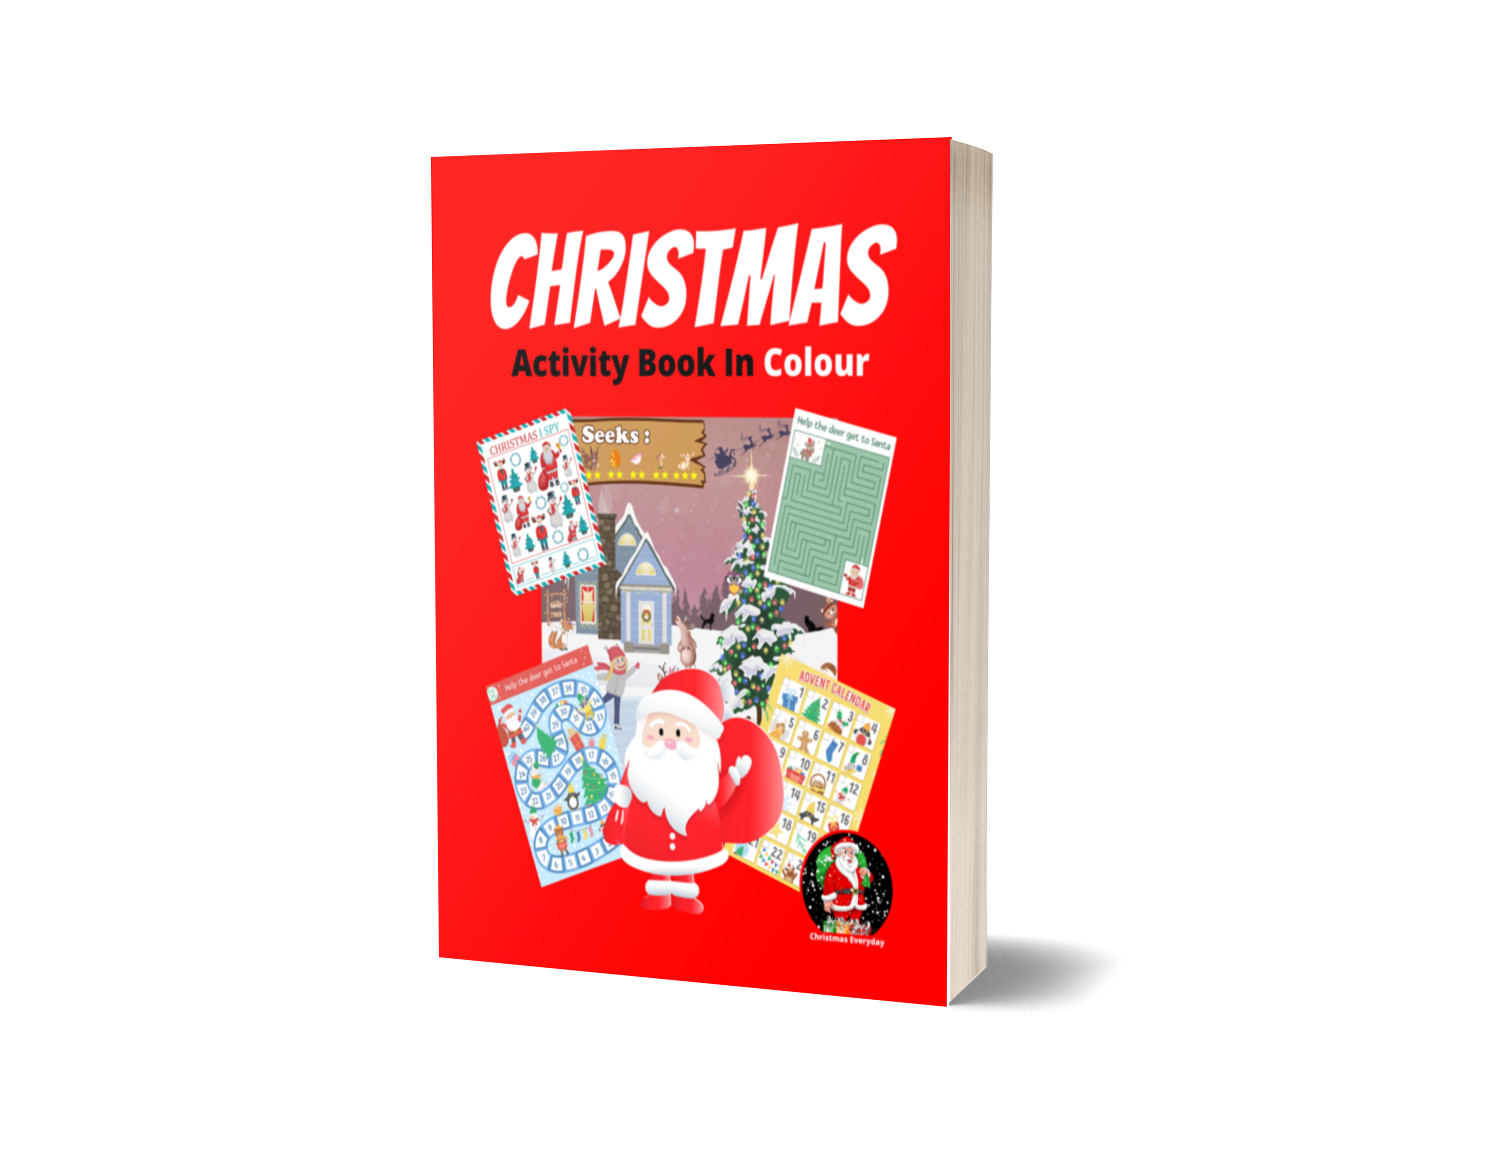 hristmas Activity Book In Colour